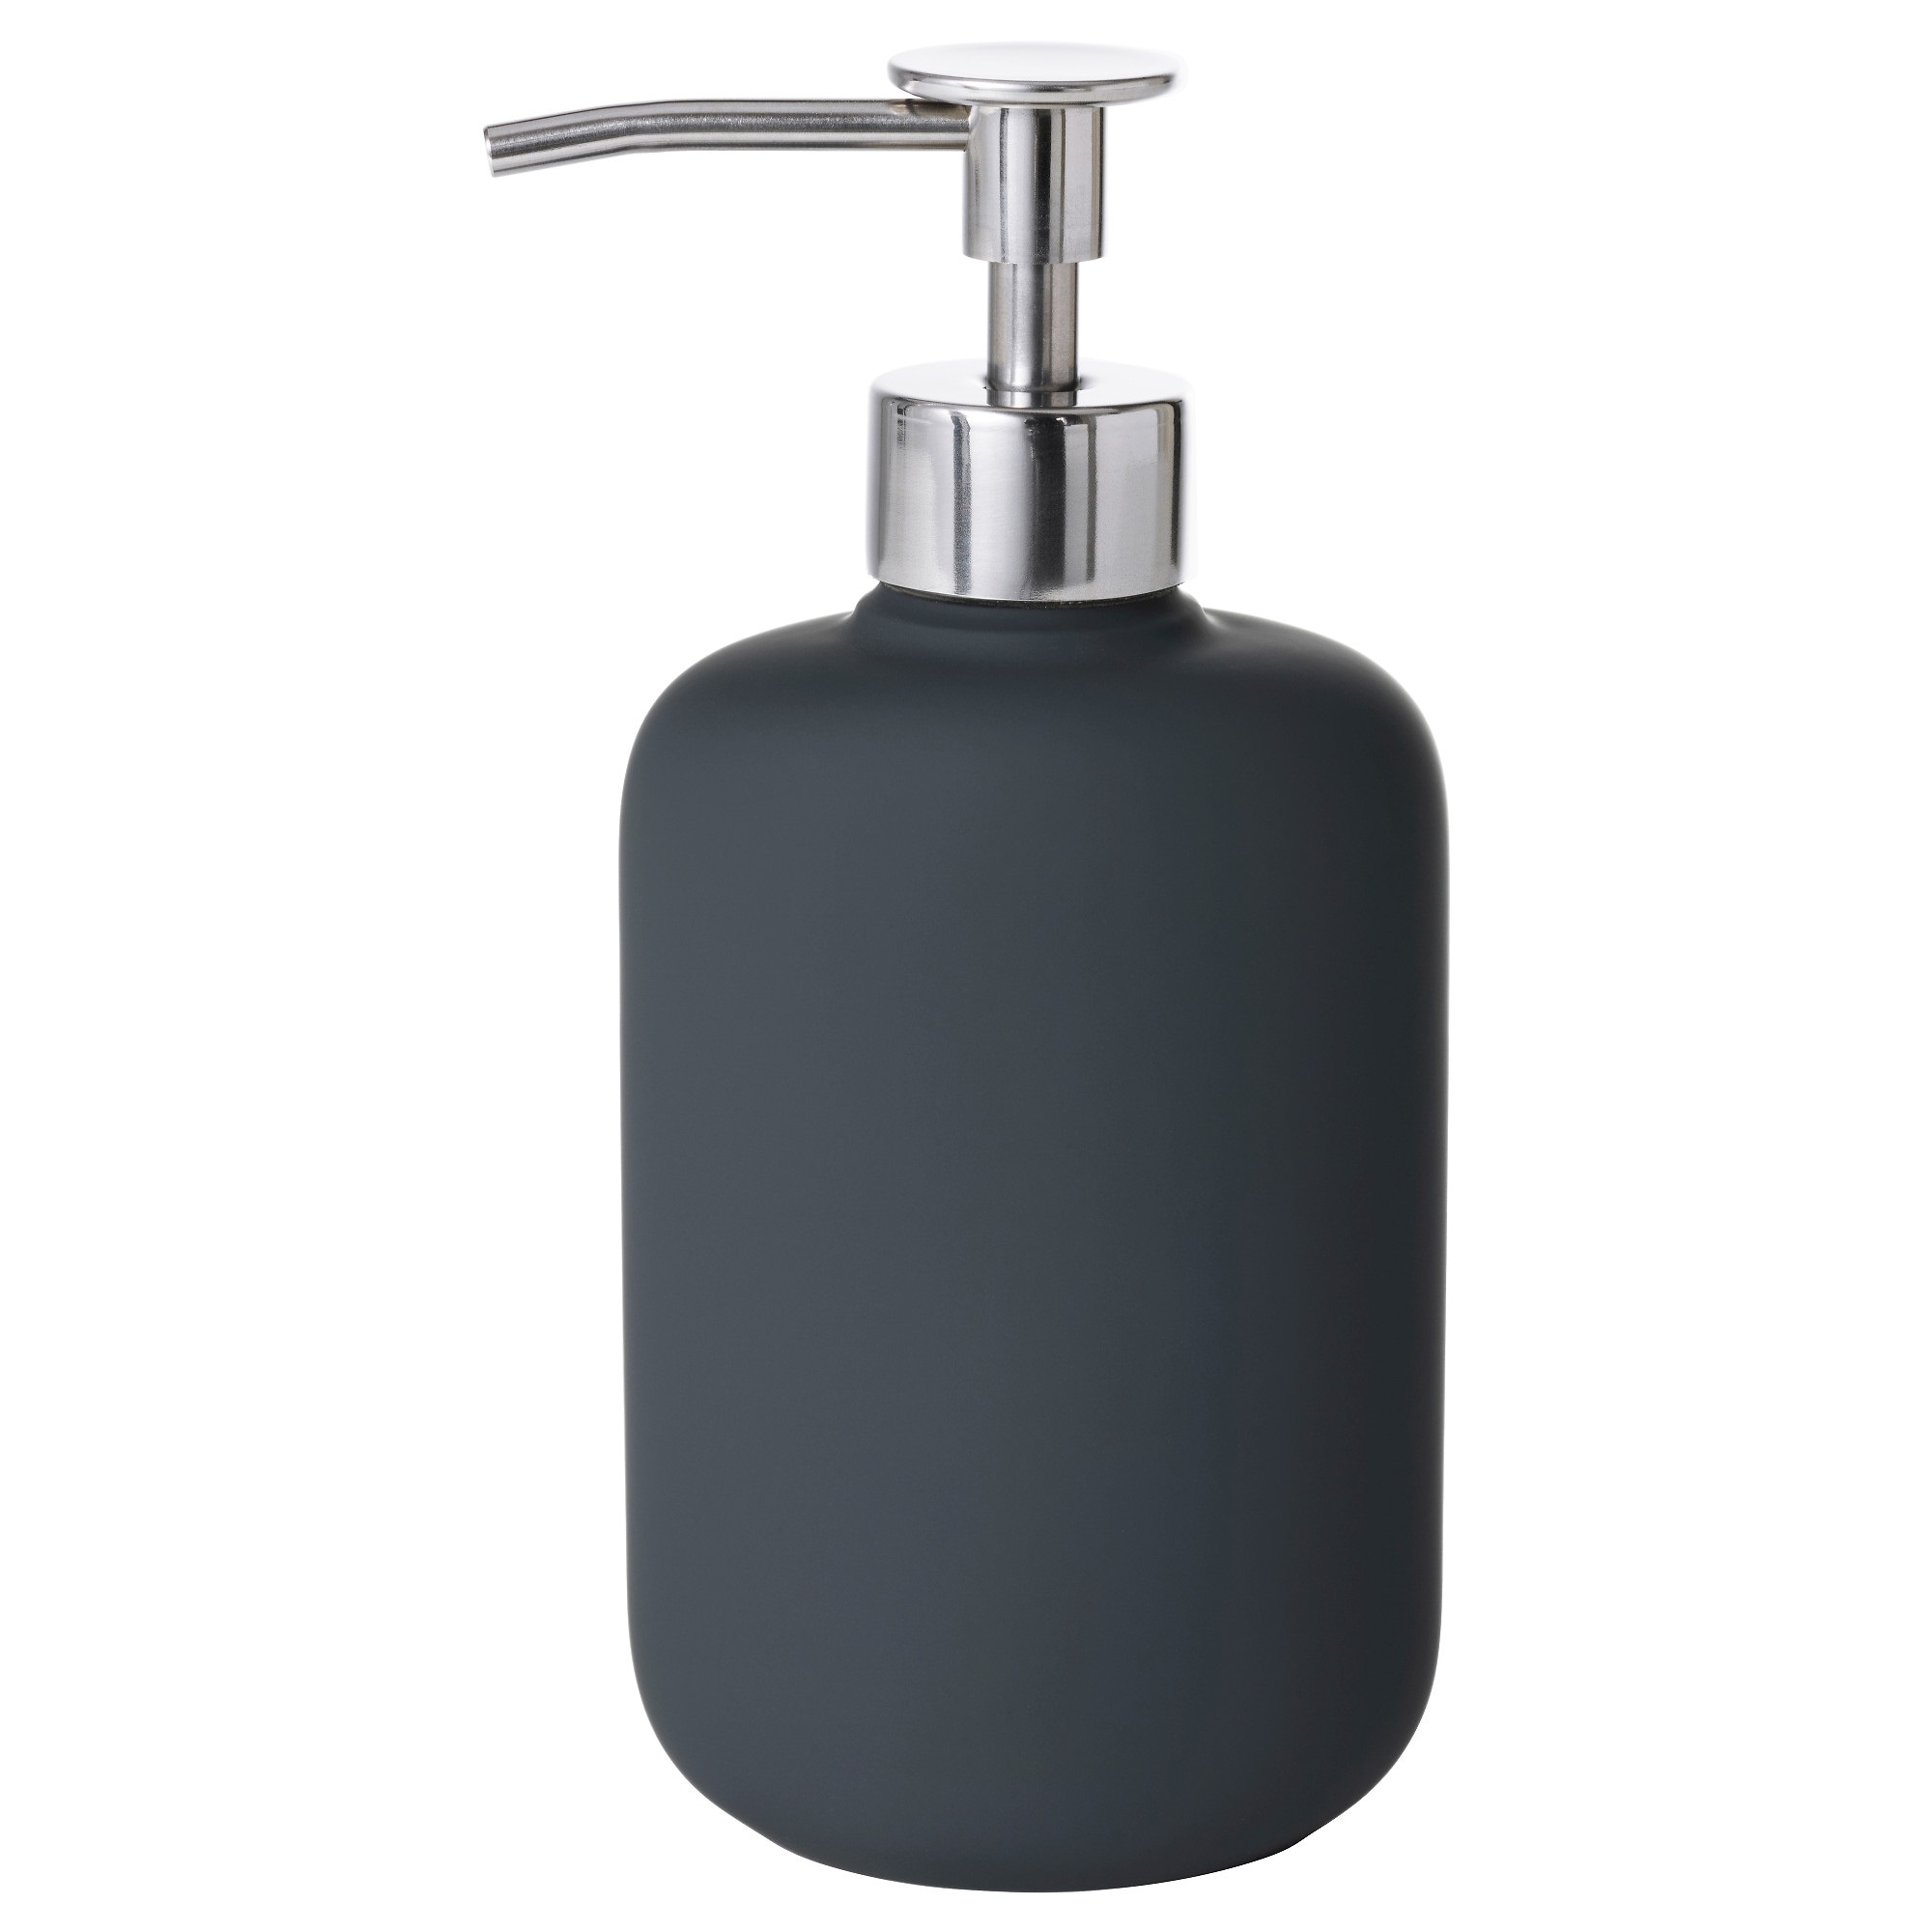 . ekoln soap dispenser  dark gray  ikea